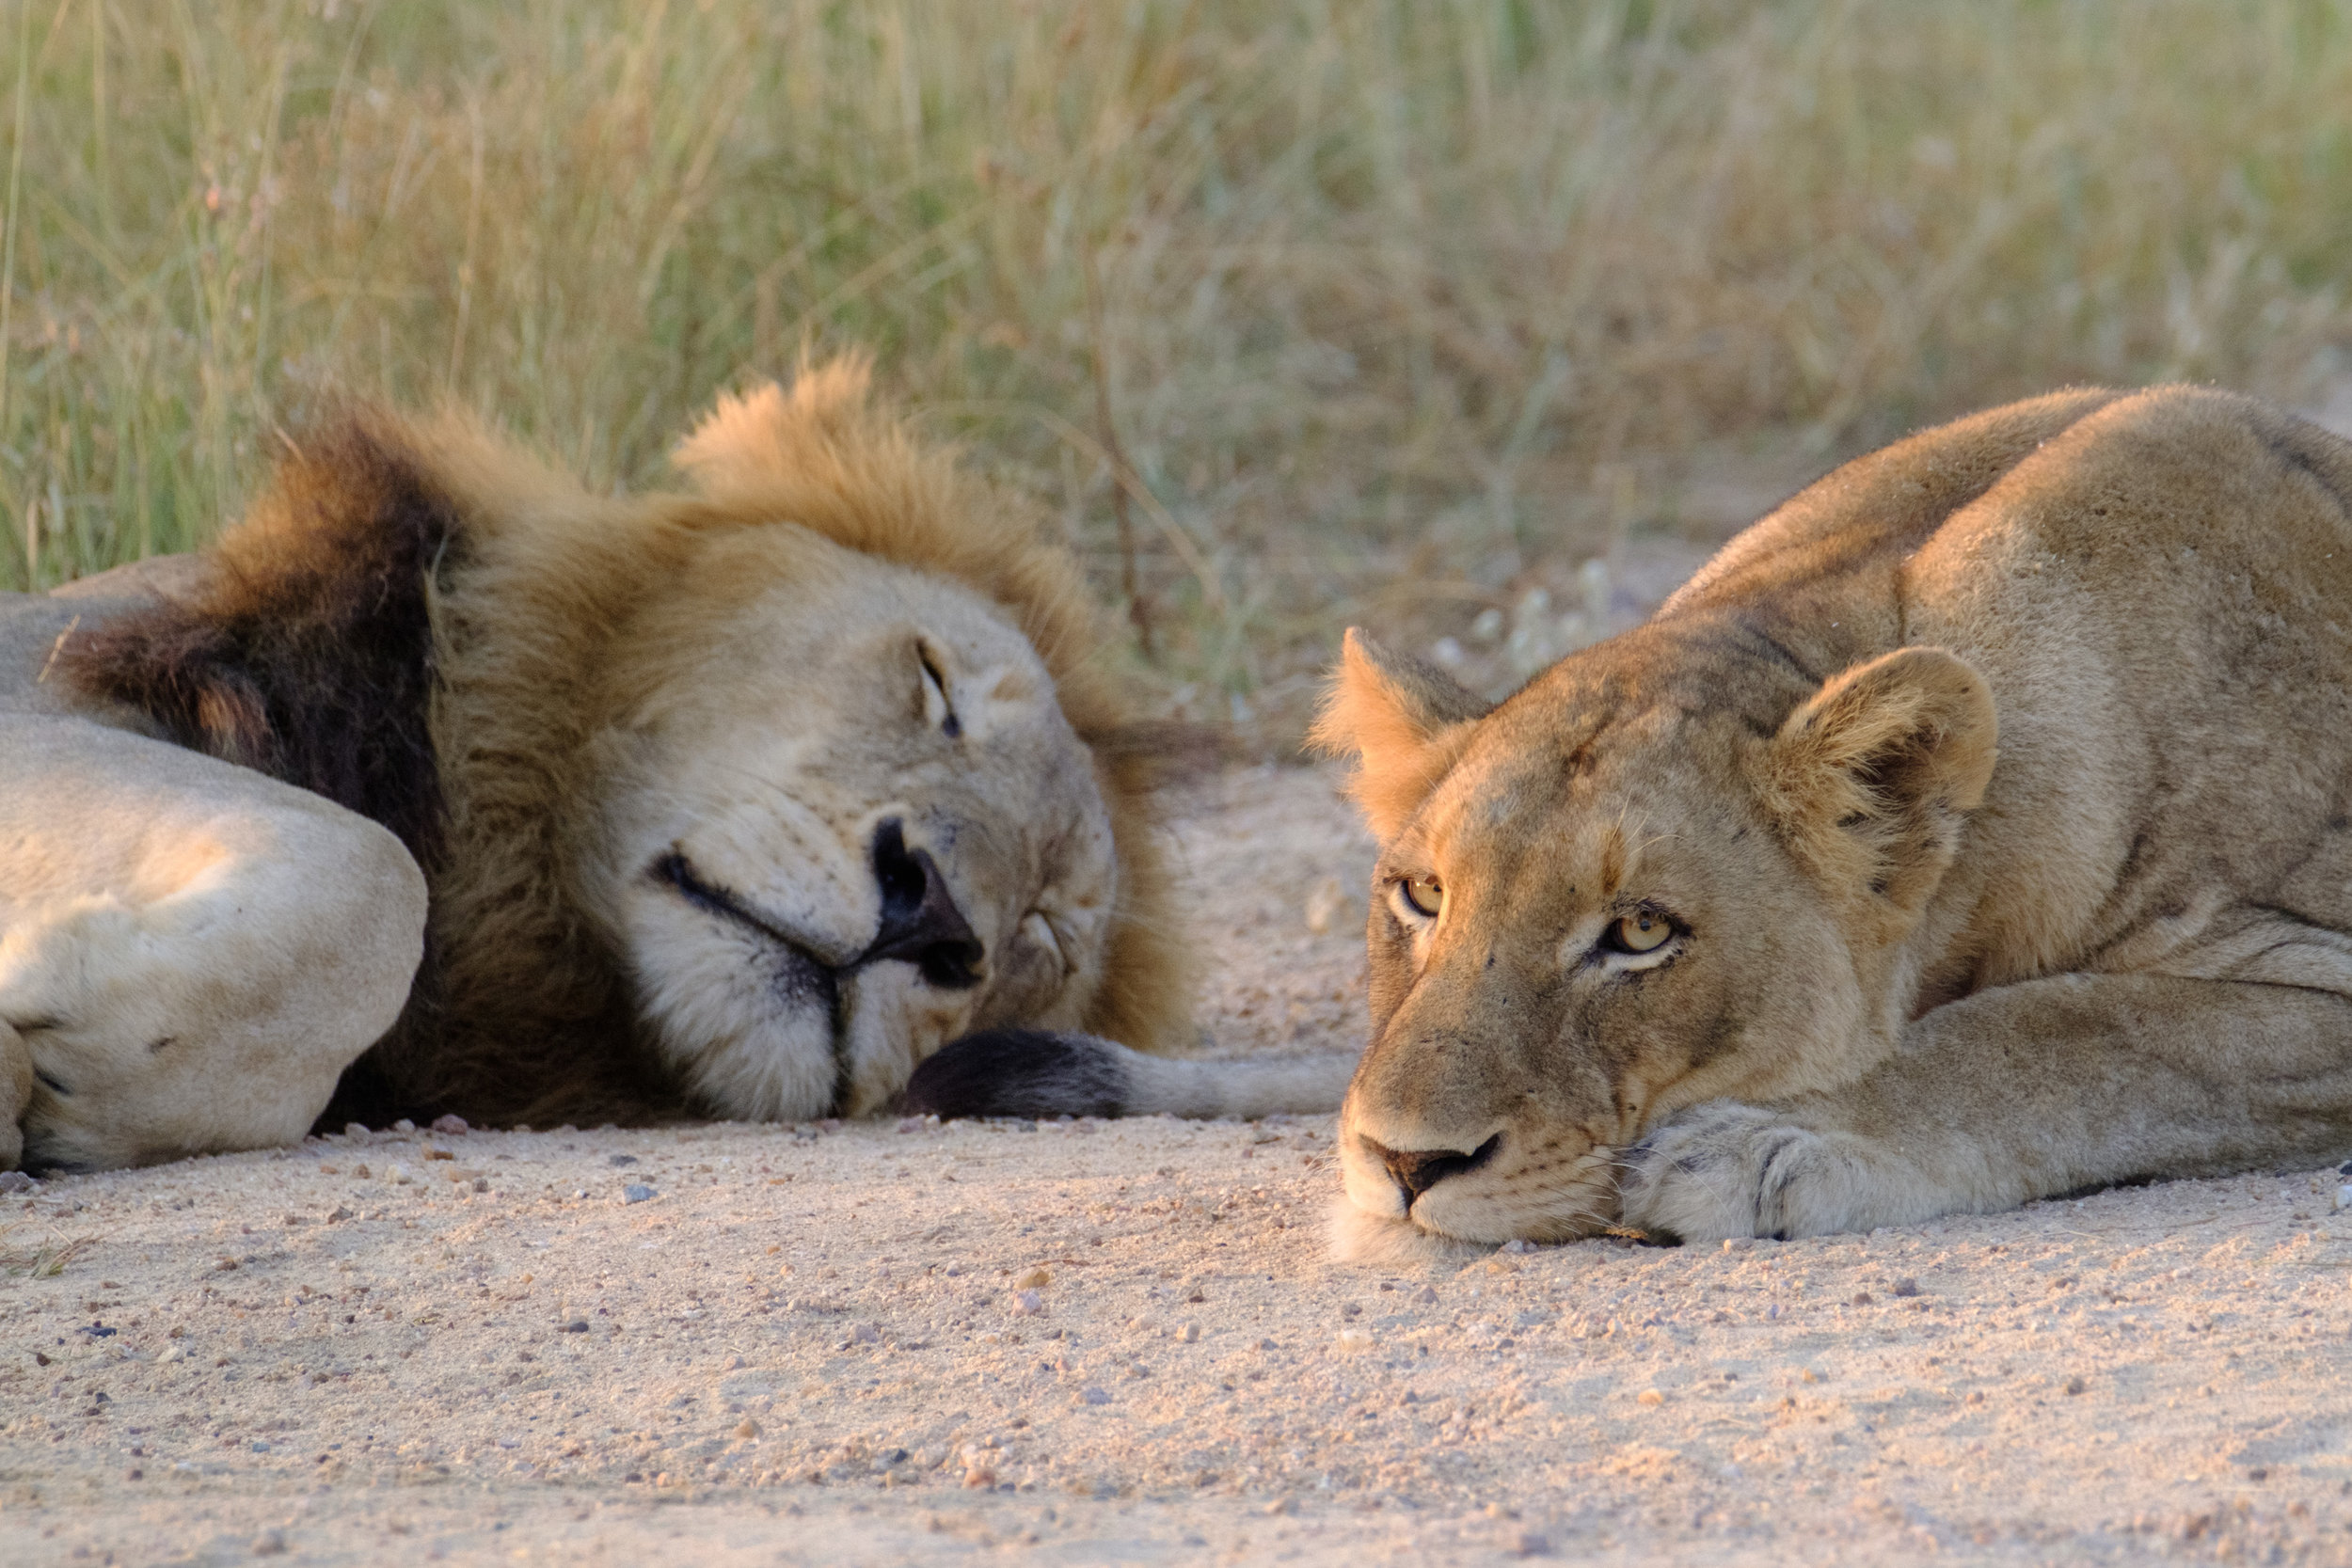 Lions in between mating sessions - XF 100-400mm with 1.4x TC, F5.4, ISO 3200